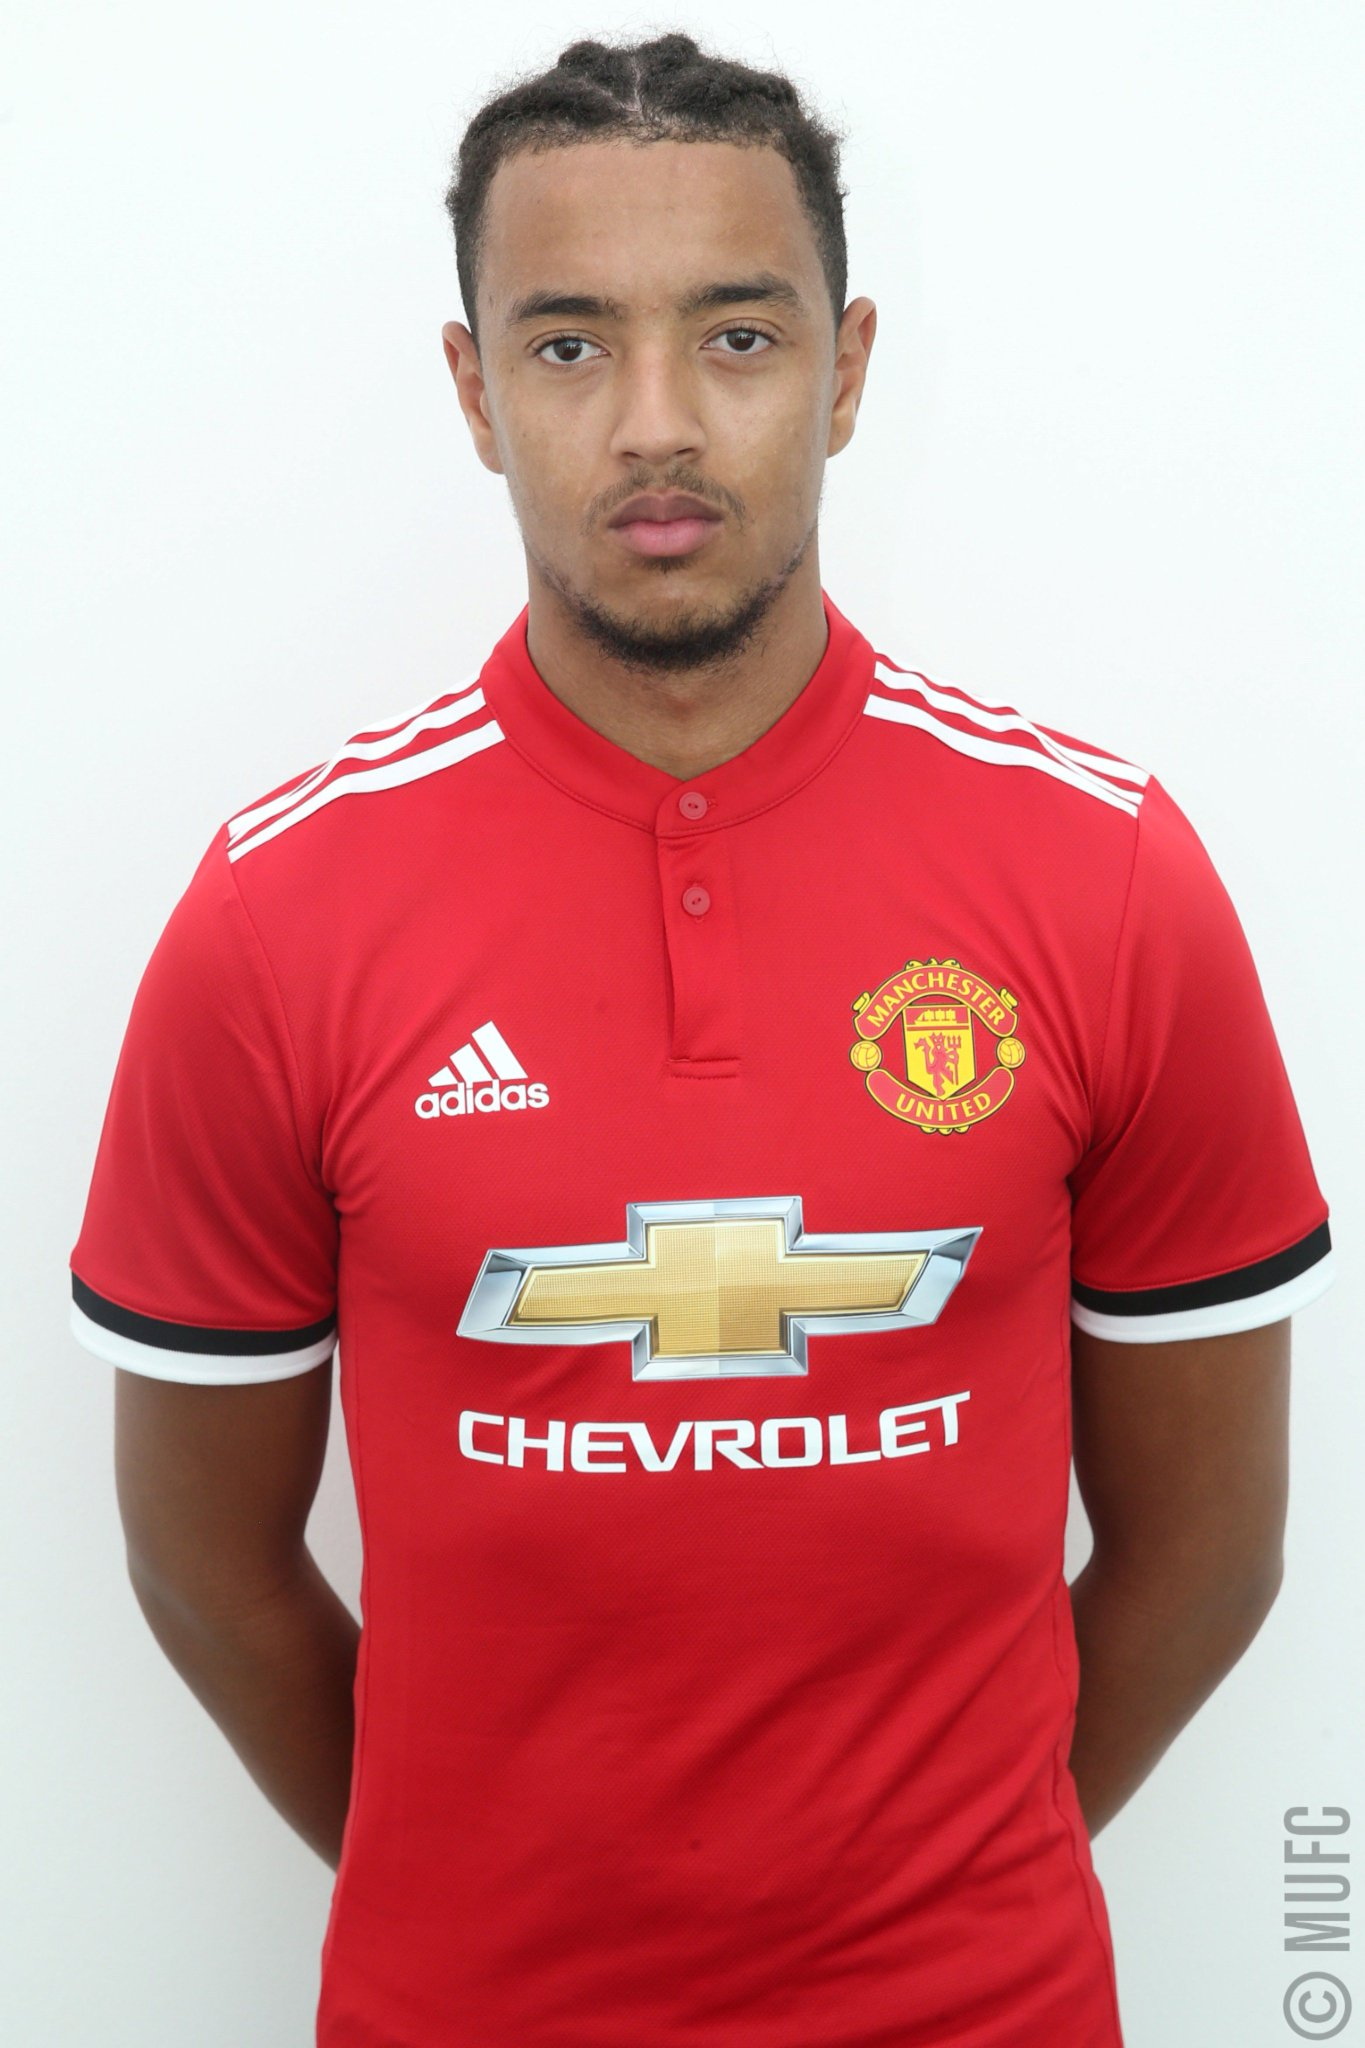 Cameron Borthwick-Jackson has returned to #MUFC following his loan spell at Leeds United. https://t.co/qIzIS1In1M